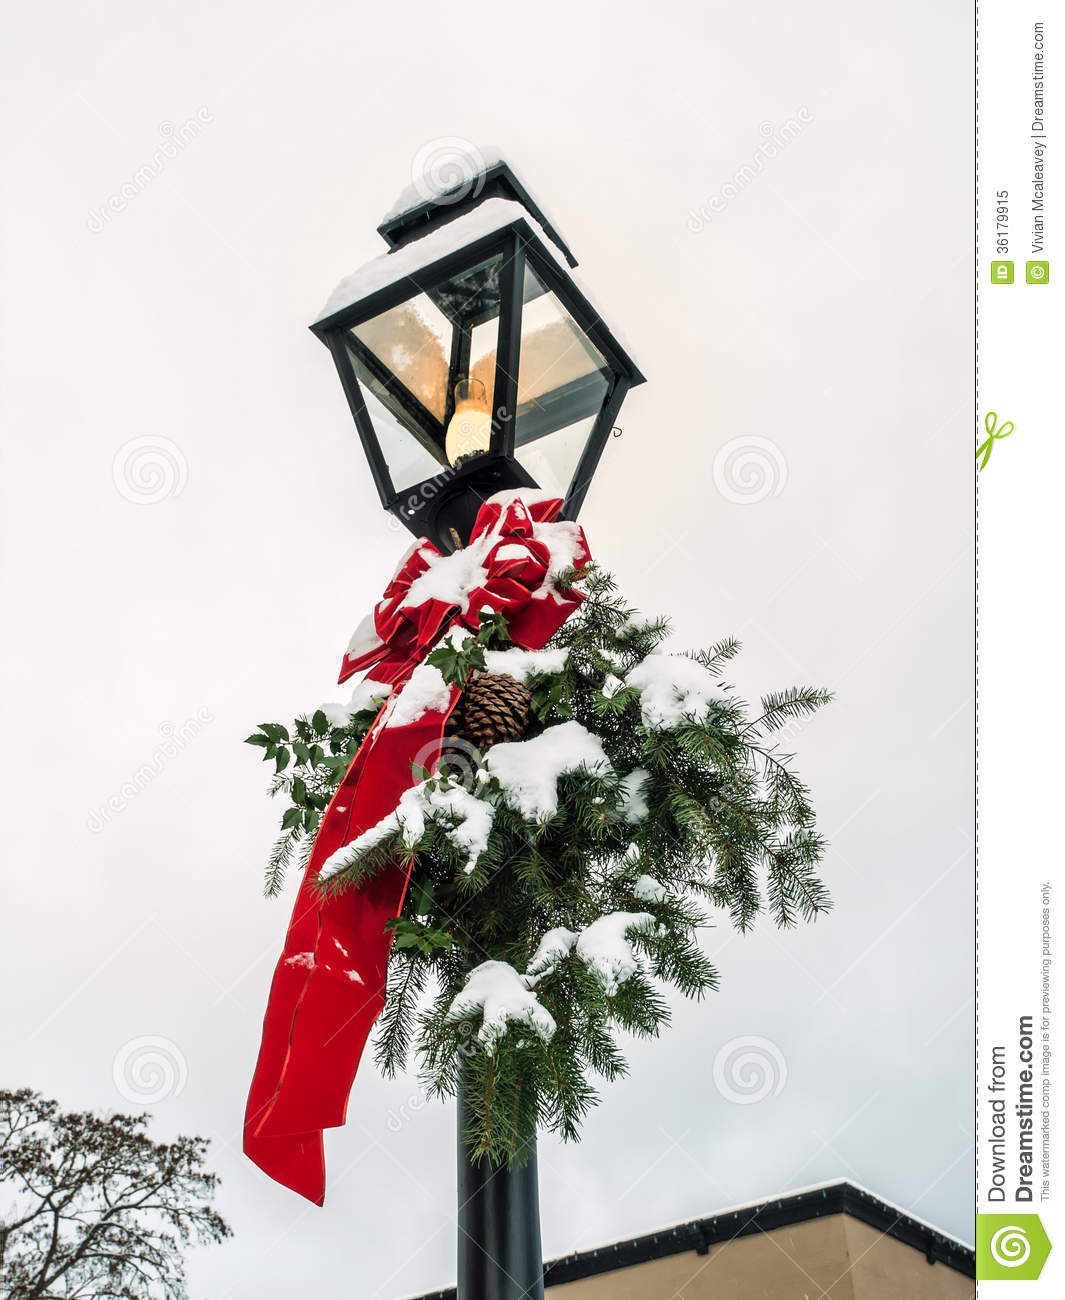 lamp post christmas decoration old red ribbon evergreen - Christmas Lamp Post Decoration